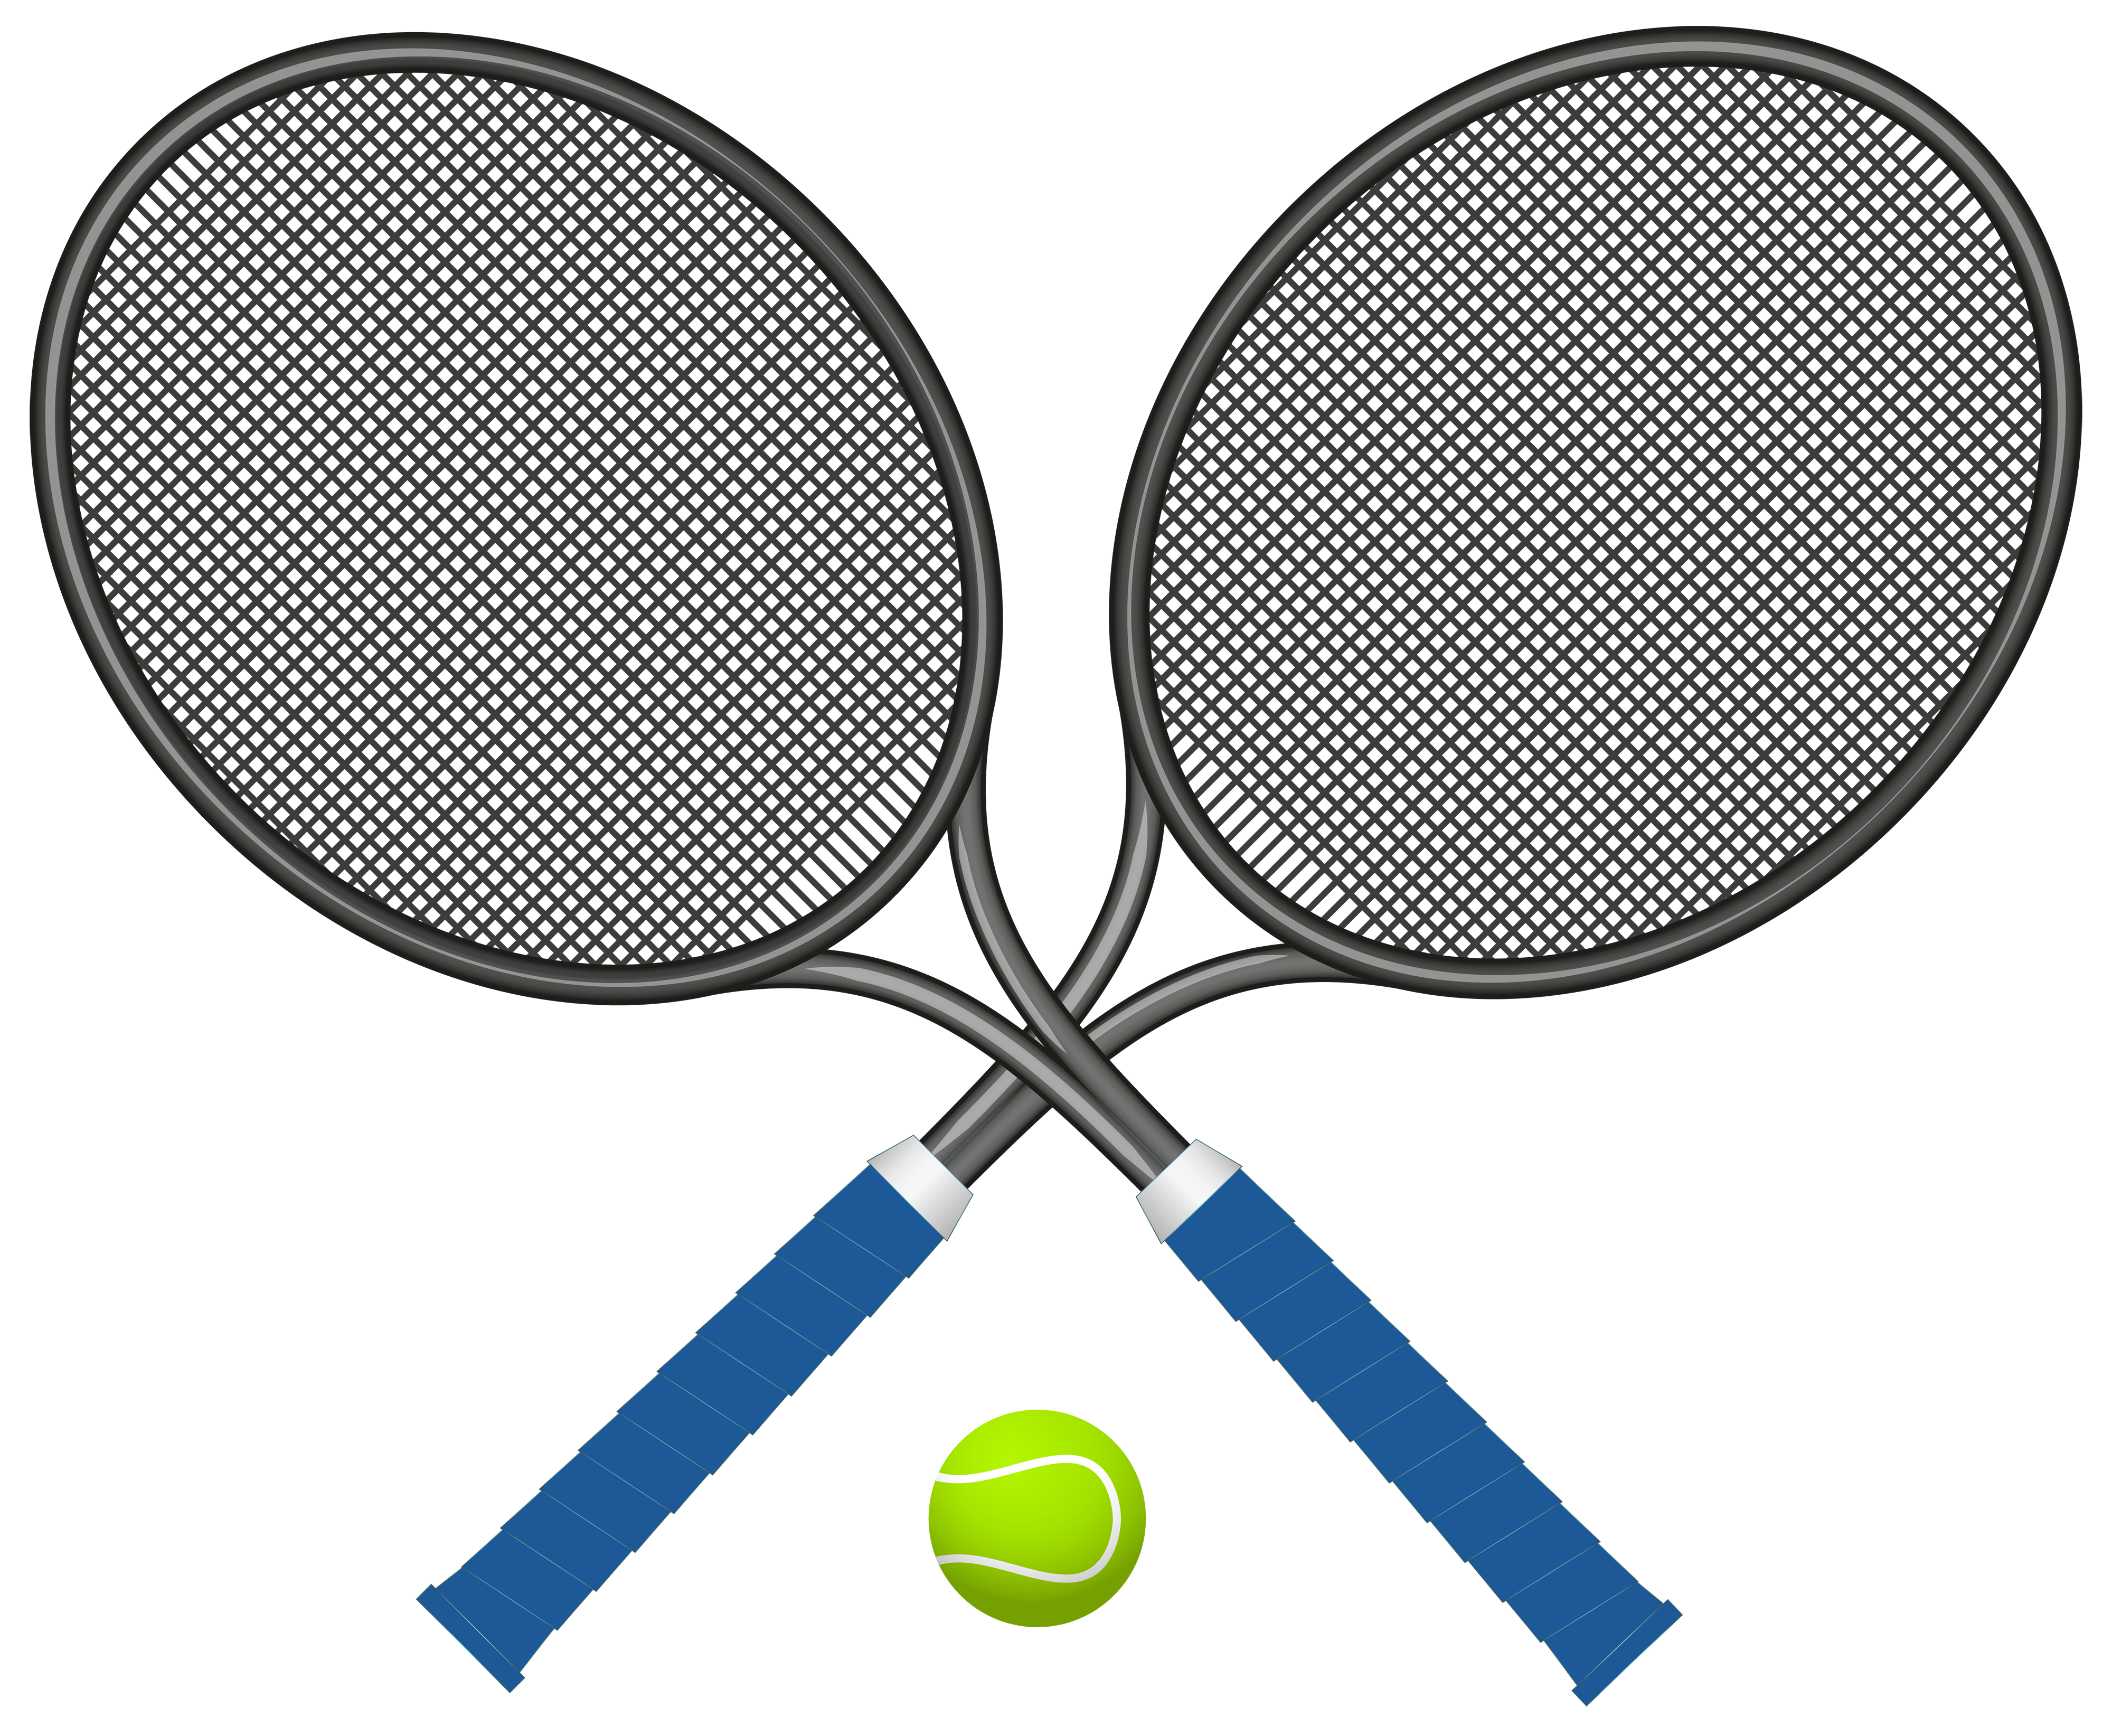 Cup clipart tennis.  collection of lawn